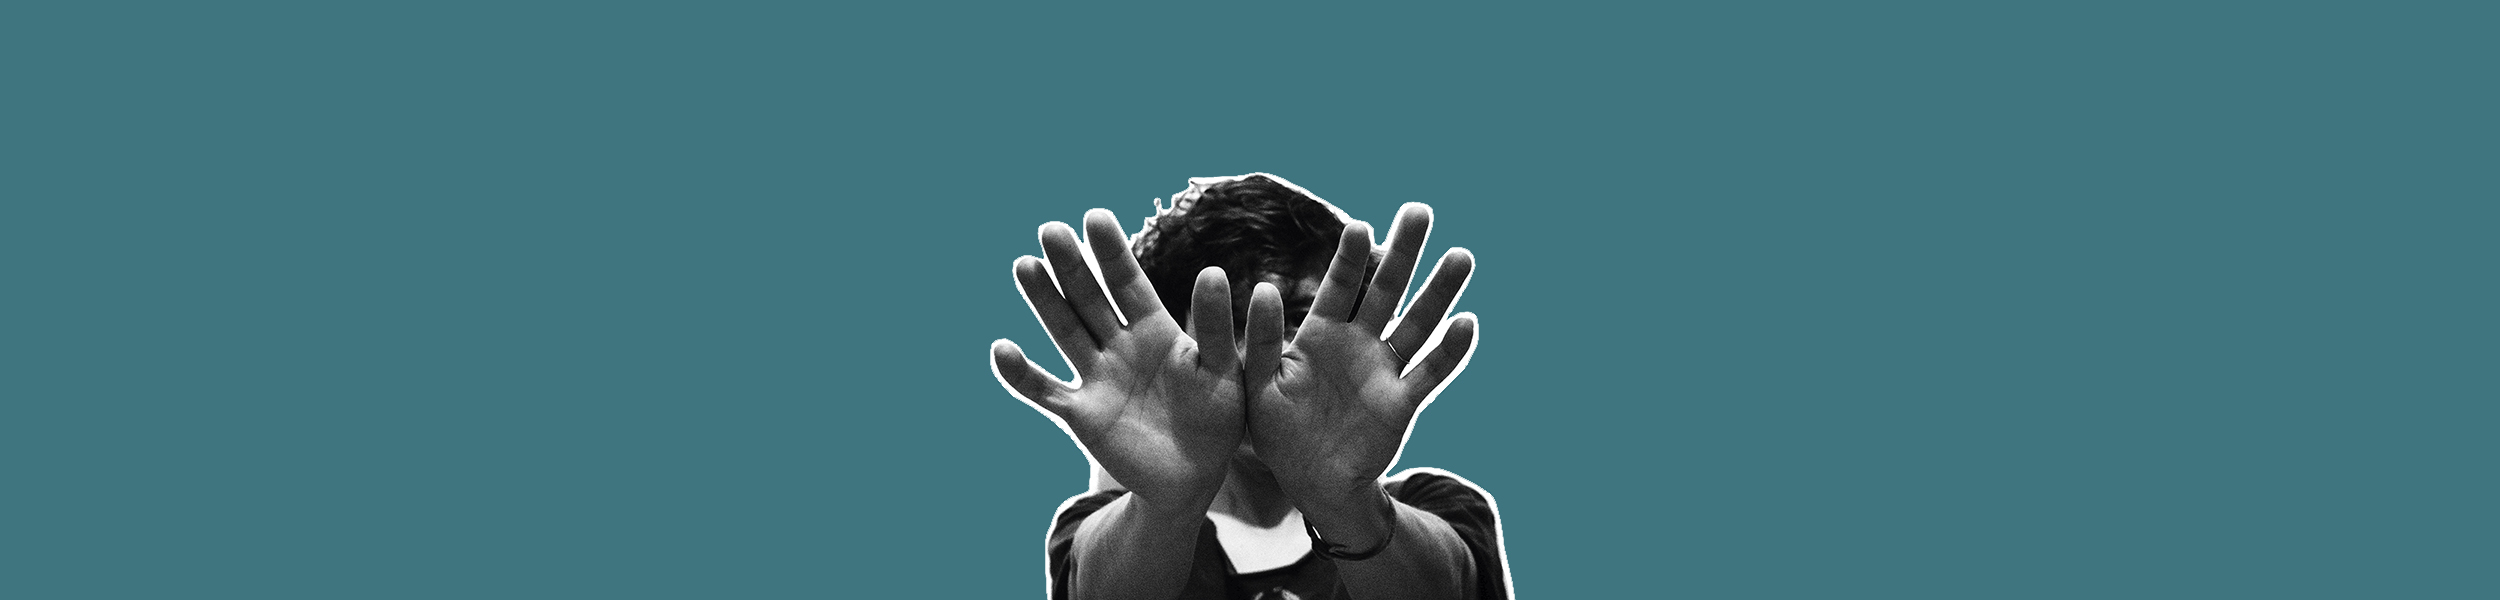 Tune-Yards - 'I can feel you creep into my private life' Out Now